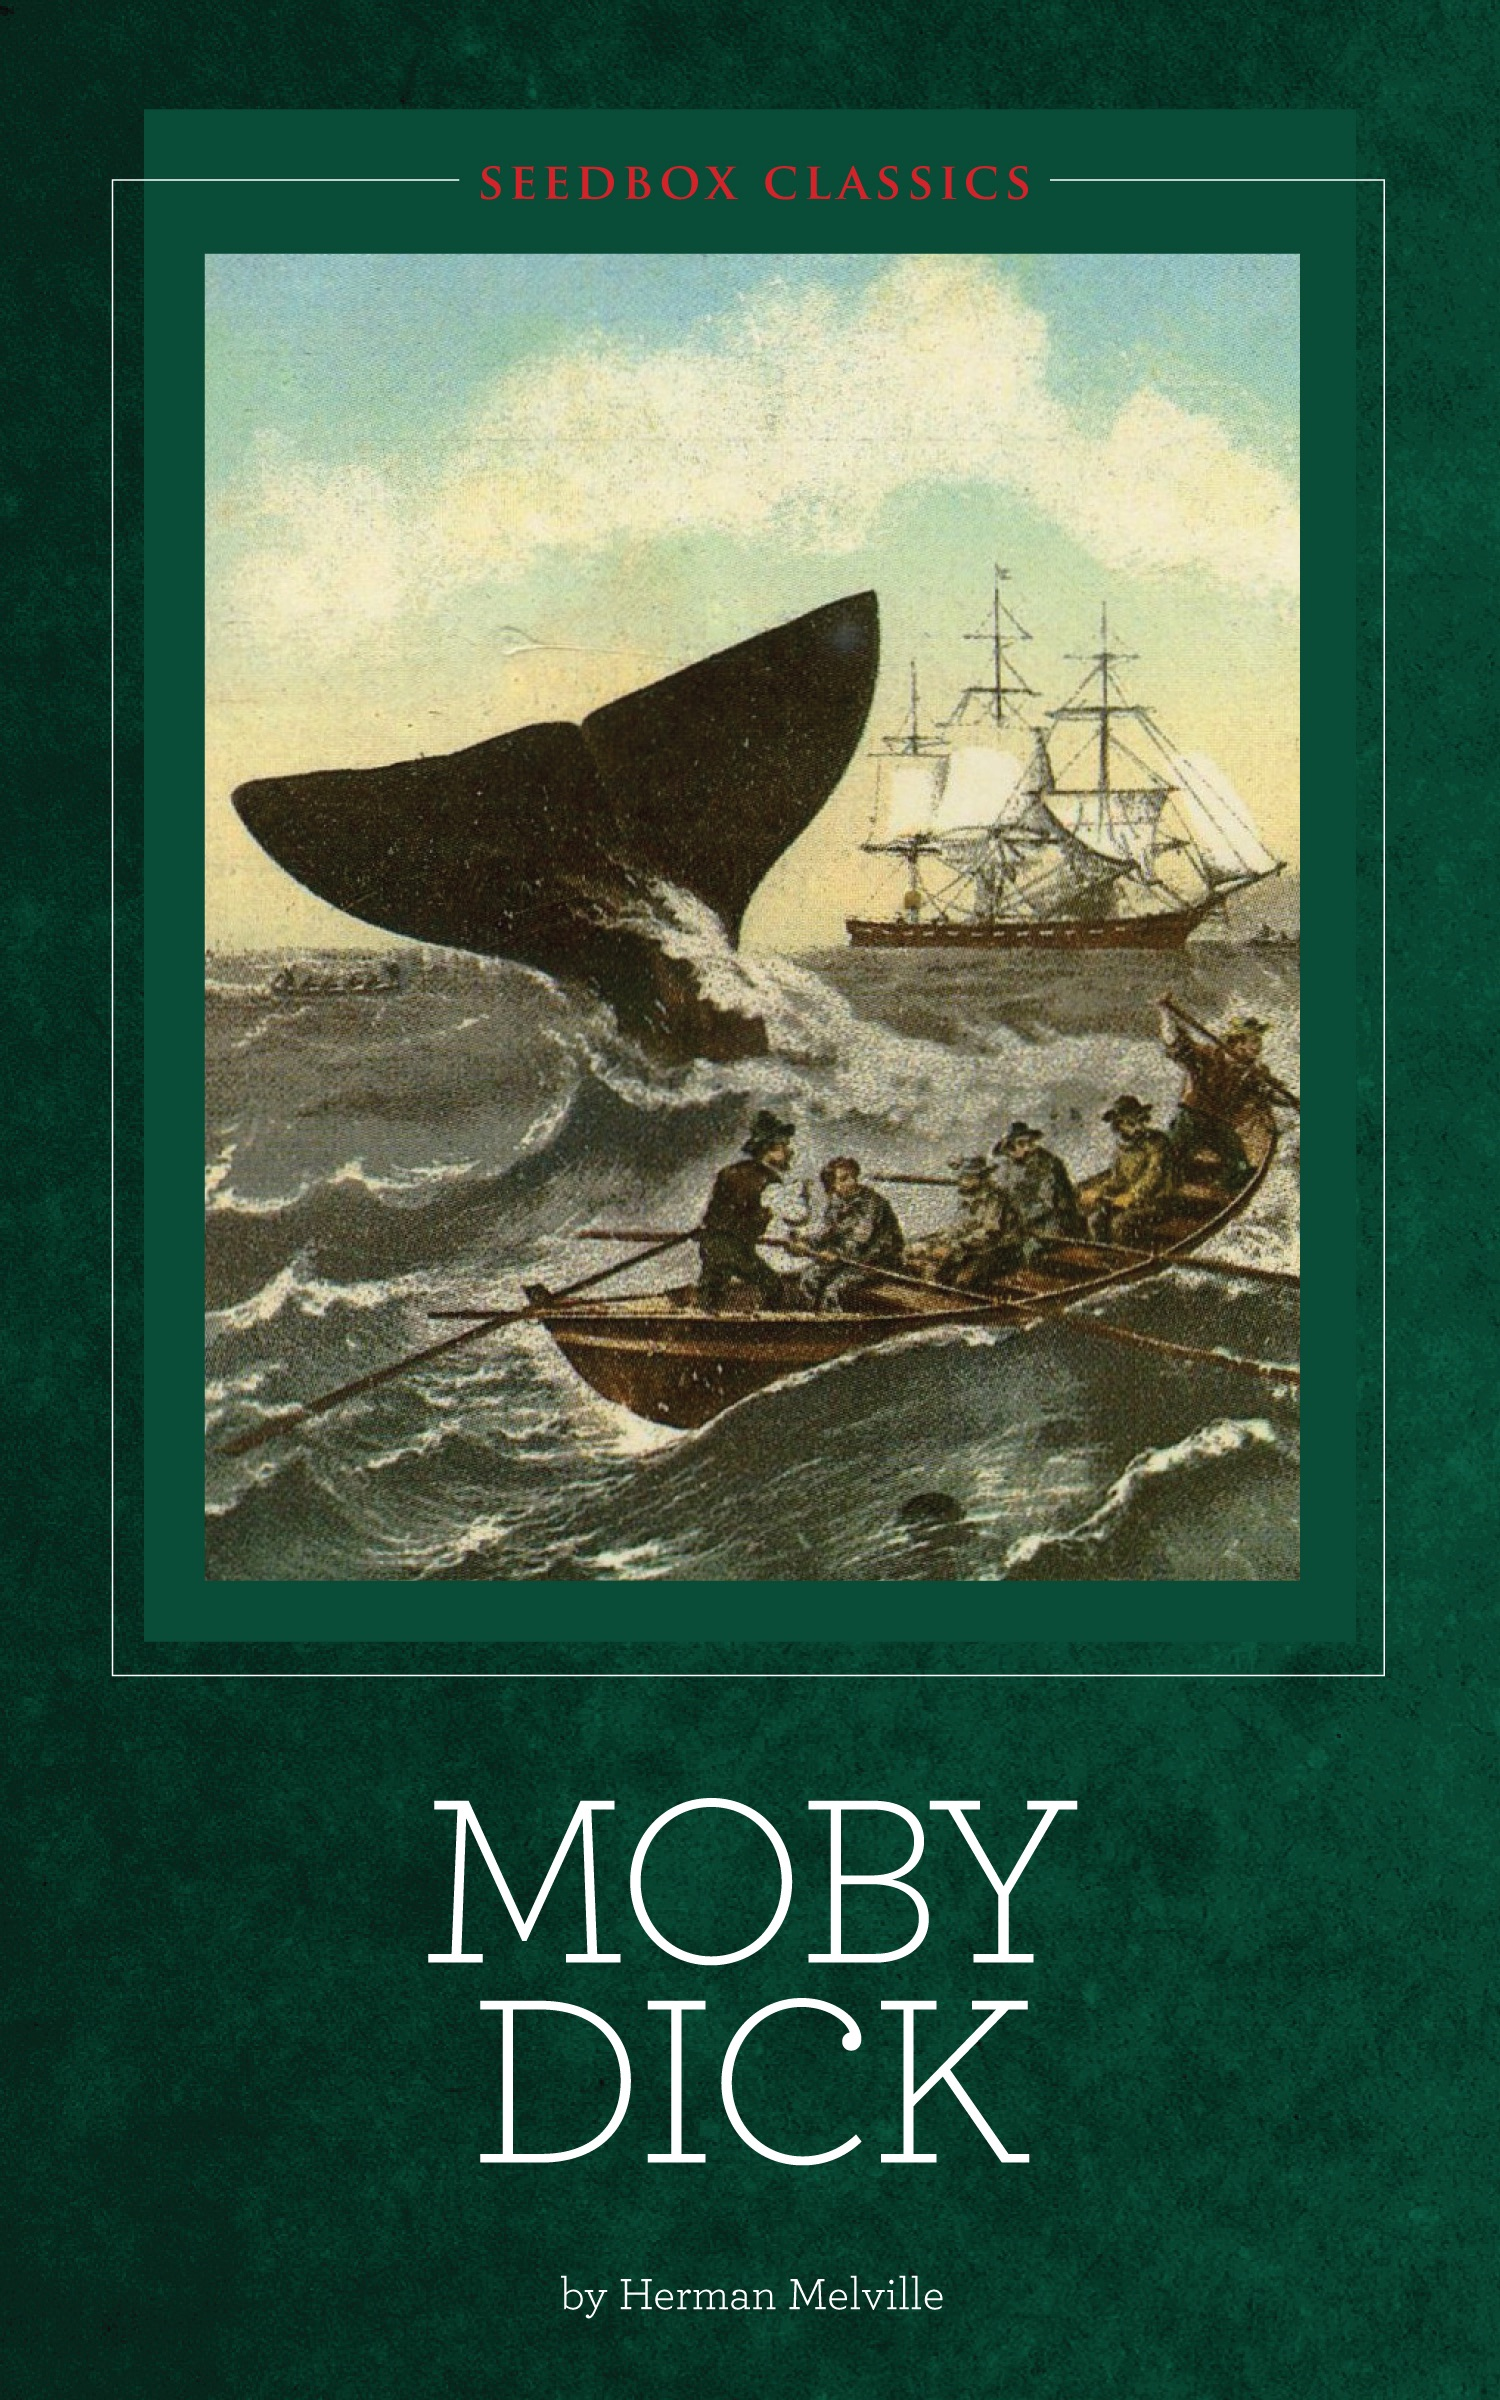 the microcosm on the pequod in moby dick by herman melville Moby-dick by herman melville the crew of the pequod, from stern, quaker first mate starbuck, to the tattooed polynesian harpooner queequeg, are a vision of the world in microcosm, the pinnacle of melville's lifelong meditation on america.